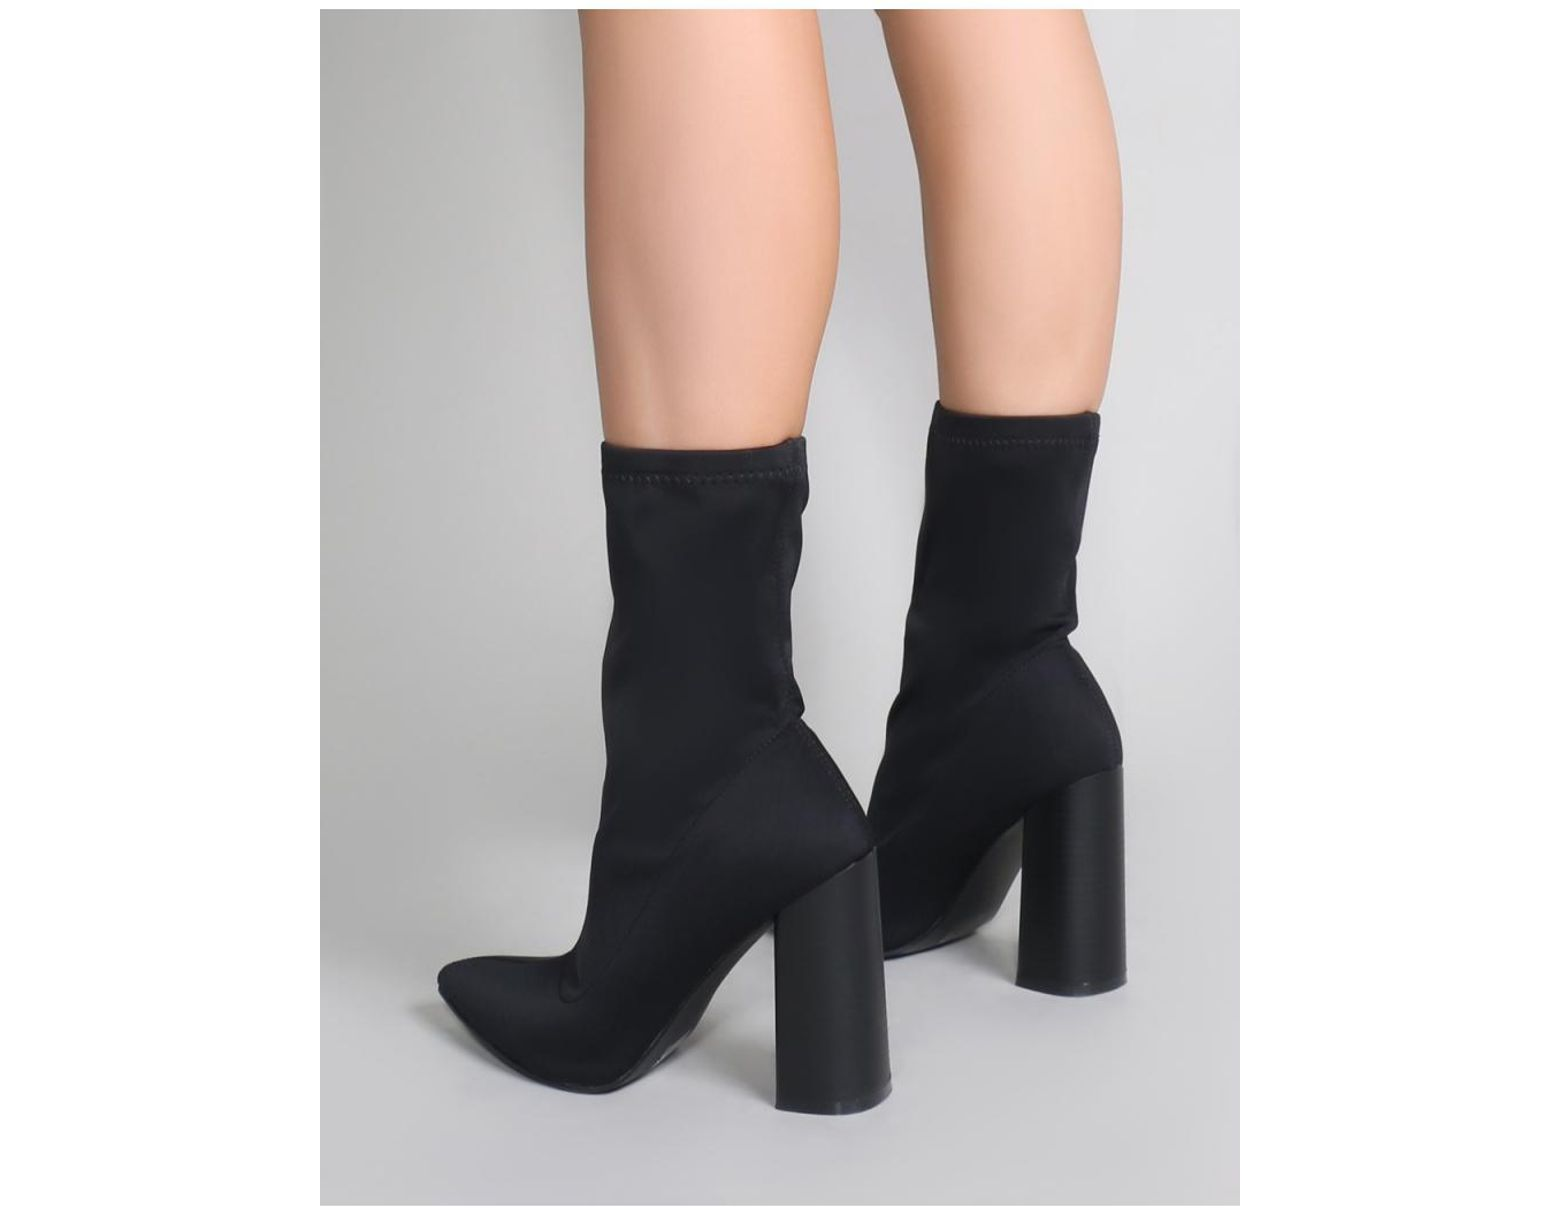 33b80ada573a Lyst - Public Desire Libby Flared Heel Sock Fit Ankle Boots In Black Stretch  in Black